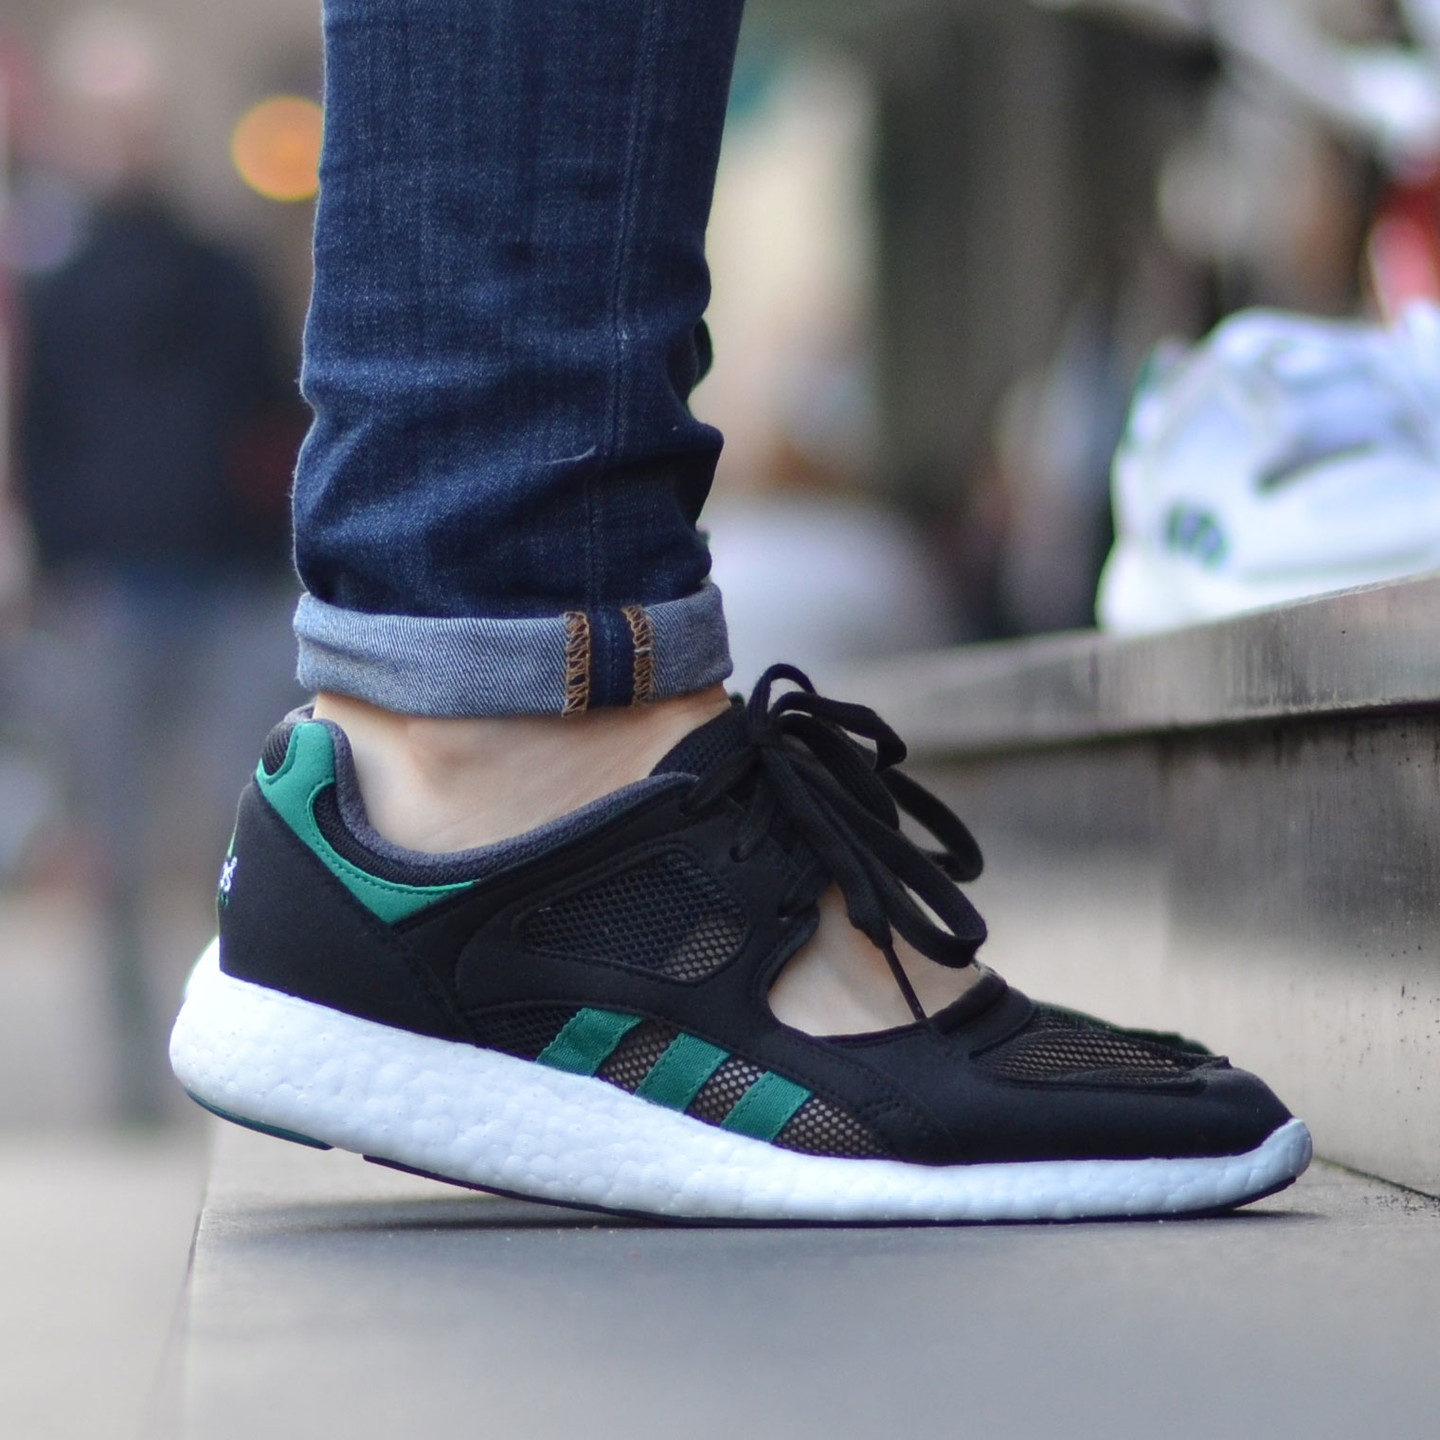 Adidas Equipment Racing 91/16 EQT Boost W Core Black / Sub Green S75584-40